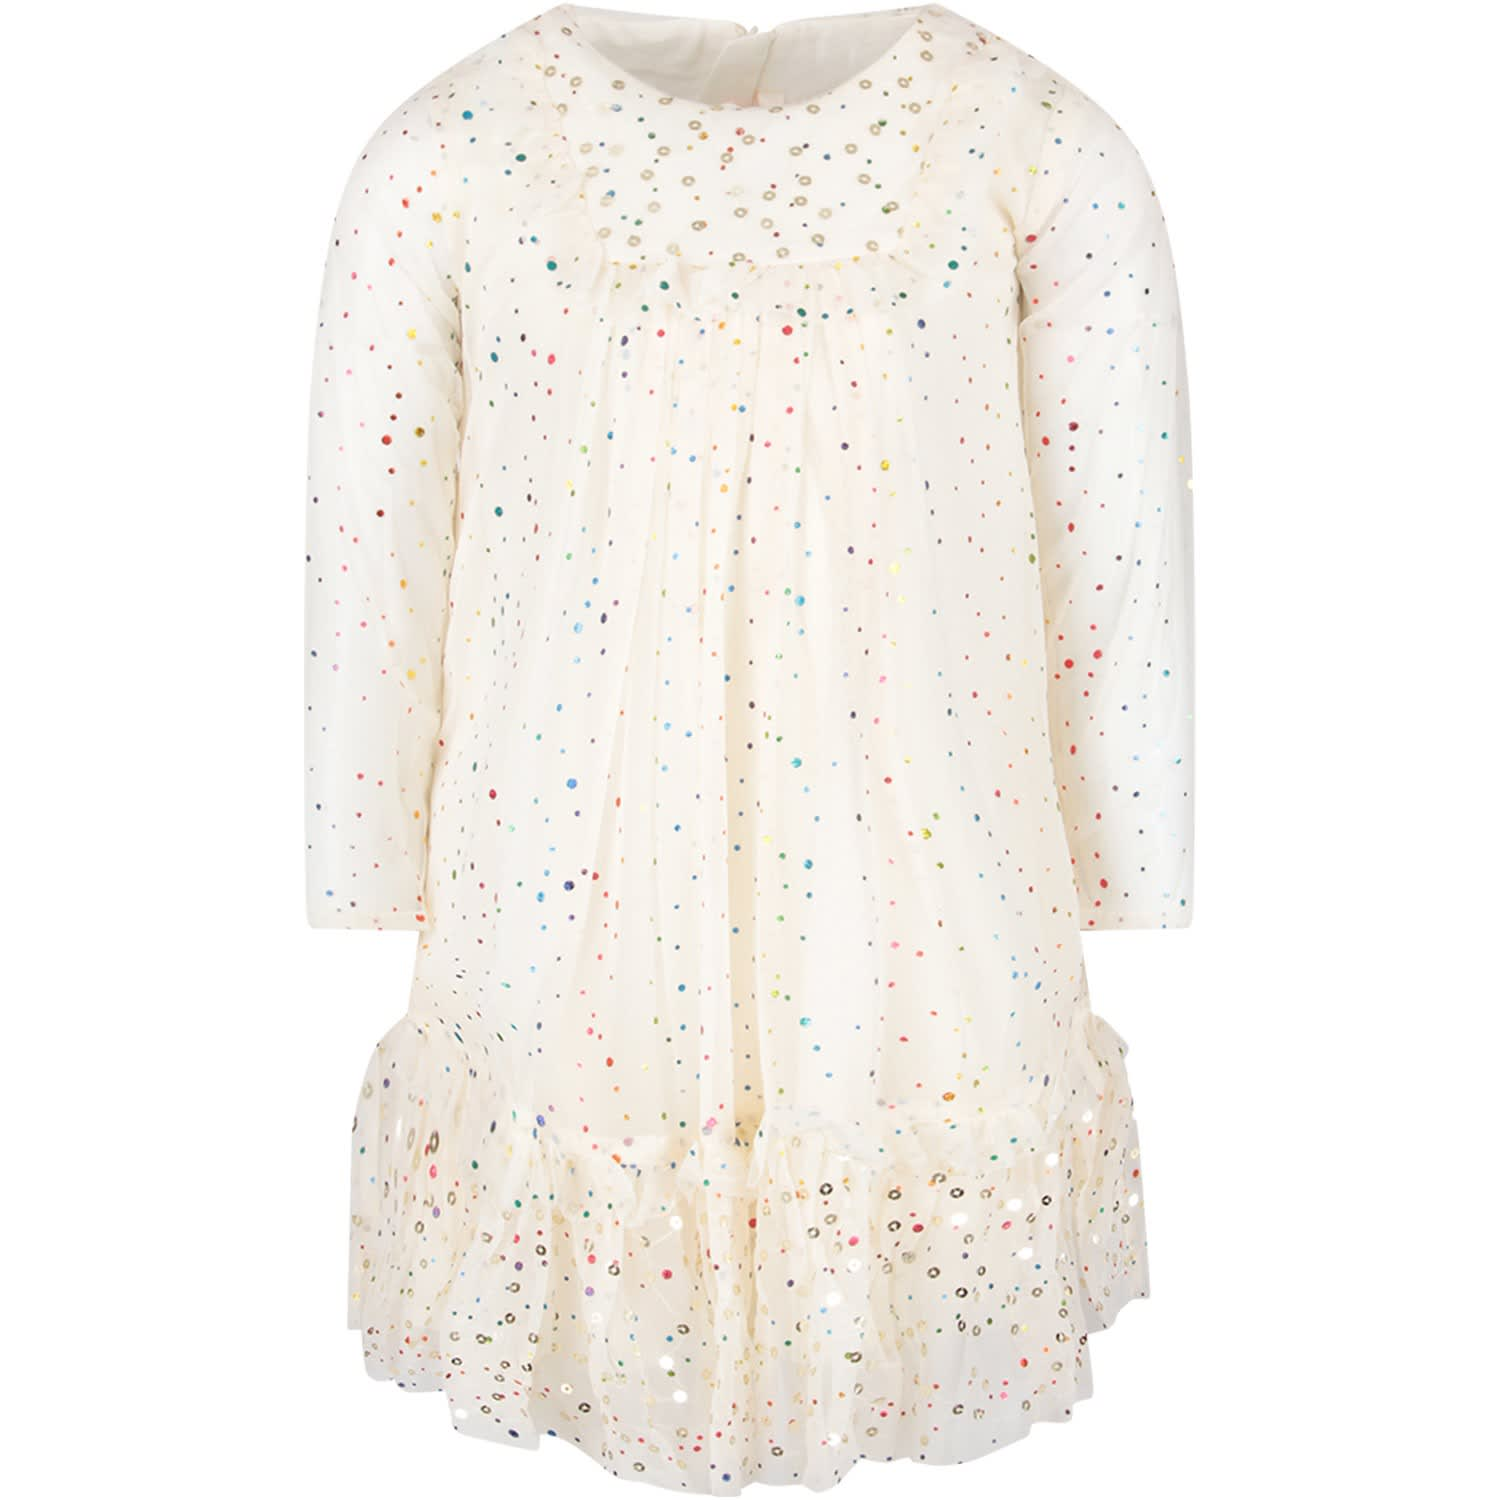 Billieblush Ivory Tulle Girl Dress With Colorful Polka-dots